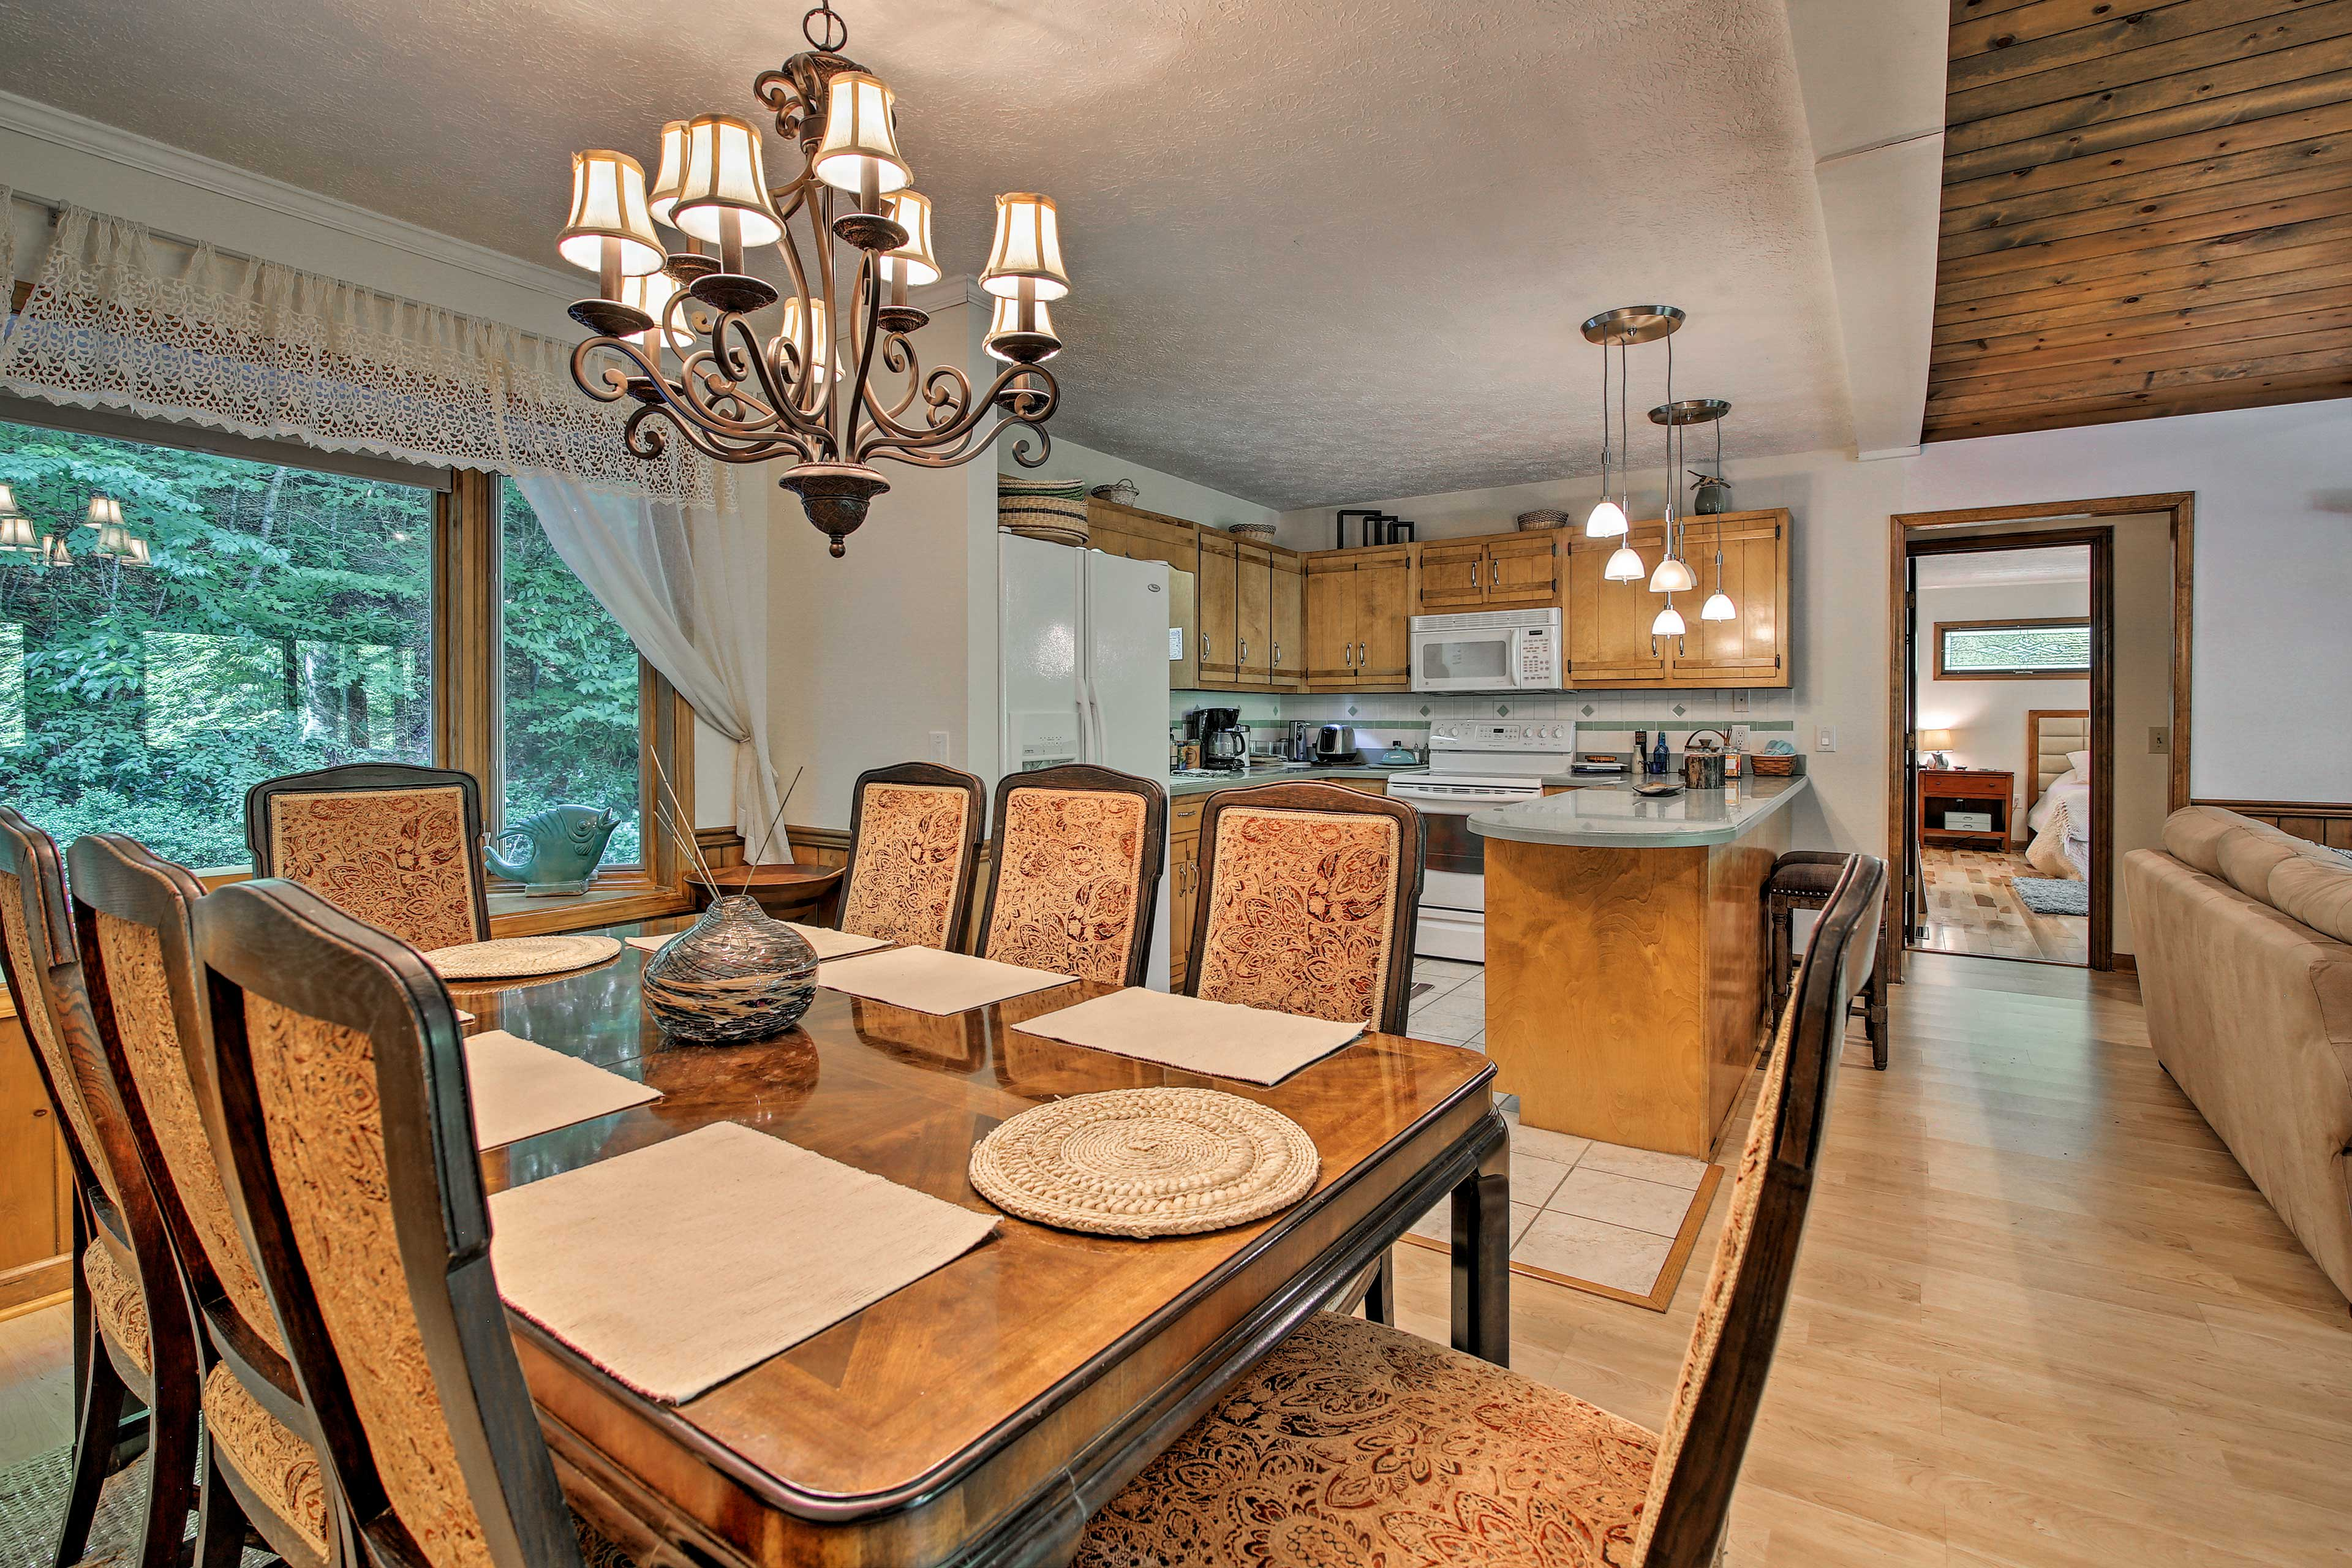 Celebrate your formal occasions around this dining table.